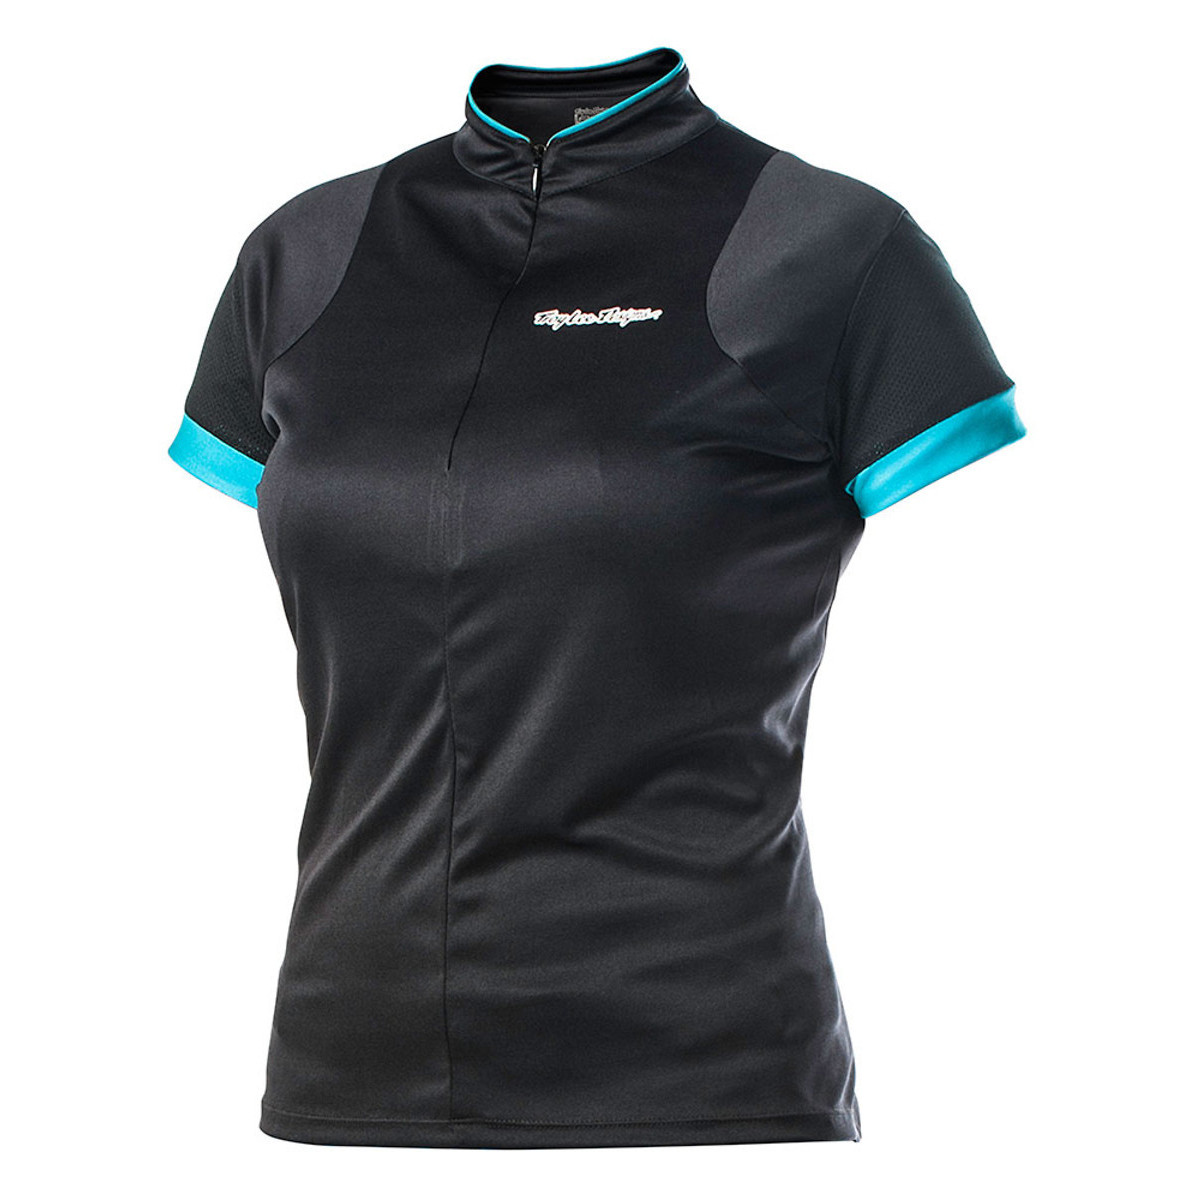 TLD Ace Women's Jersey - Black